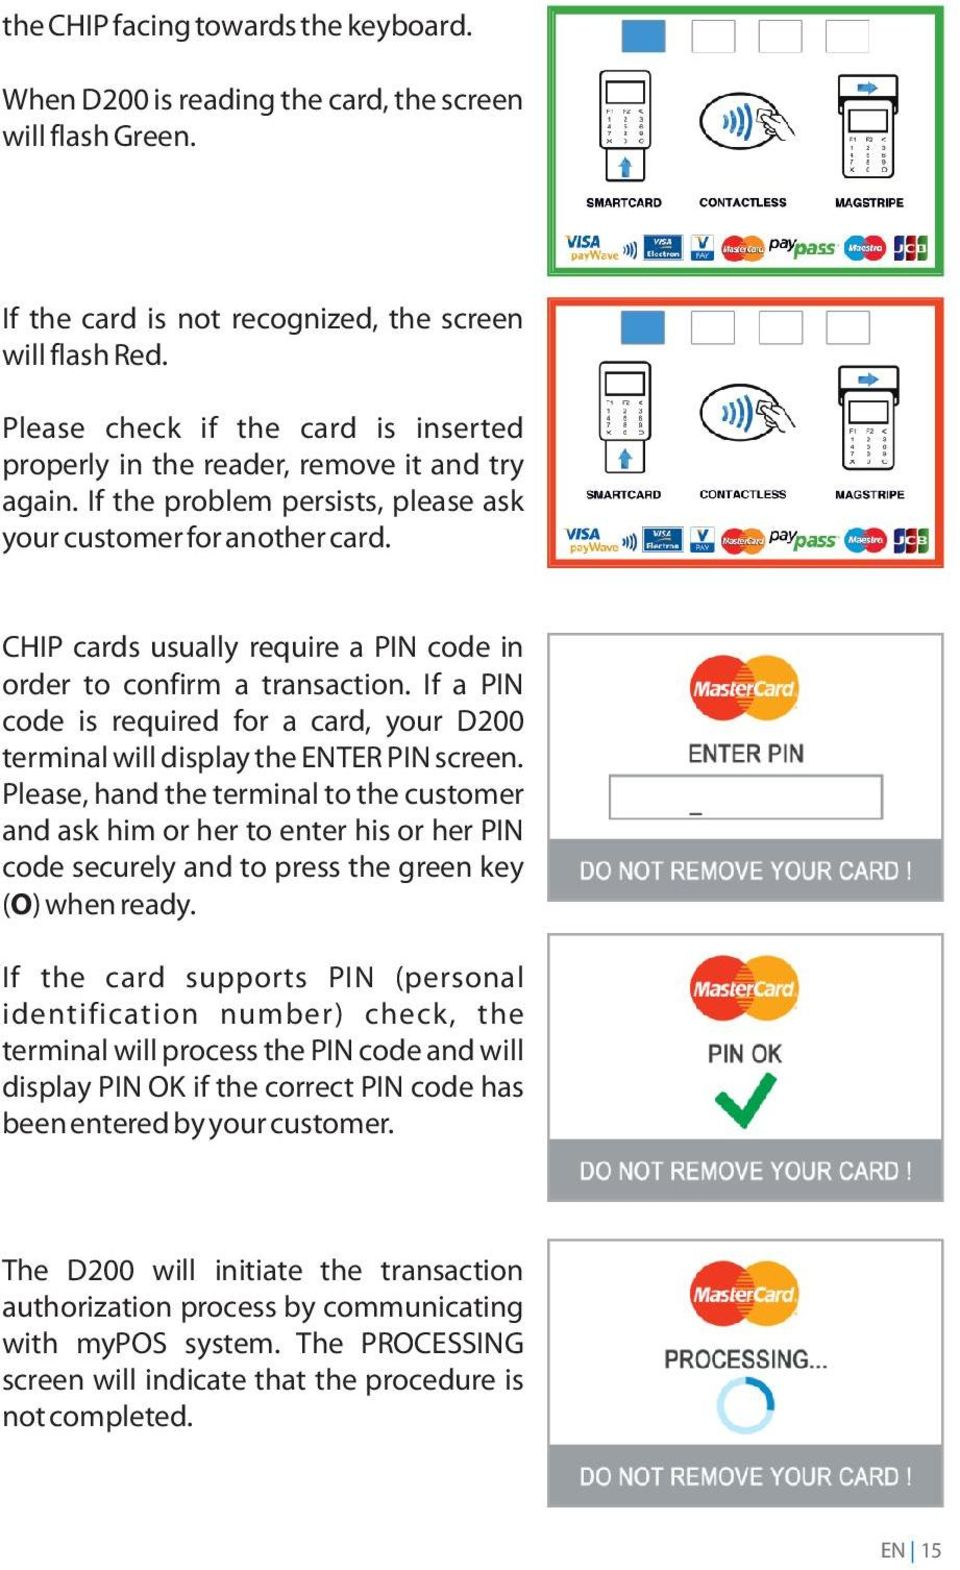 CHIP cards usually require a PIN code in order to confirm a transaction. If a PIN code is required for a card, your D200 terminal will display the ENTER PIN screen.